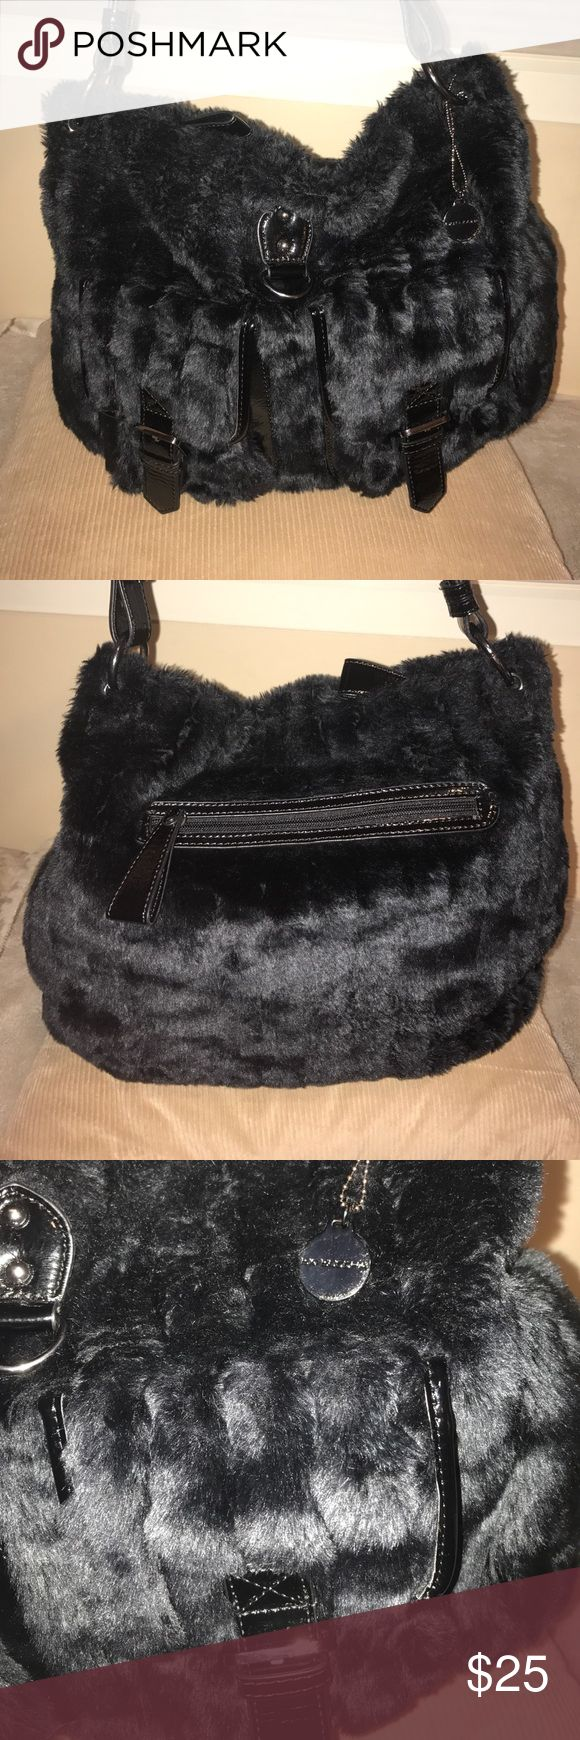 Big Buddha Faux Fur pocketbook This Big Buddha shoulder bag features fabulous black patent leather trim and silver hardware. In excellent condition. Offers are welcome! Big Buddha Bags Shoulder Bags